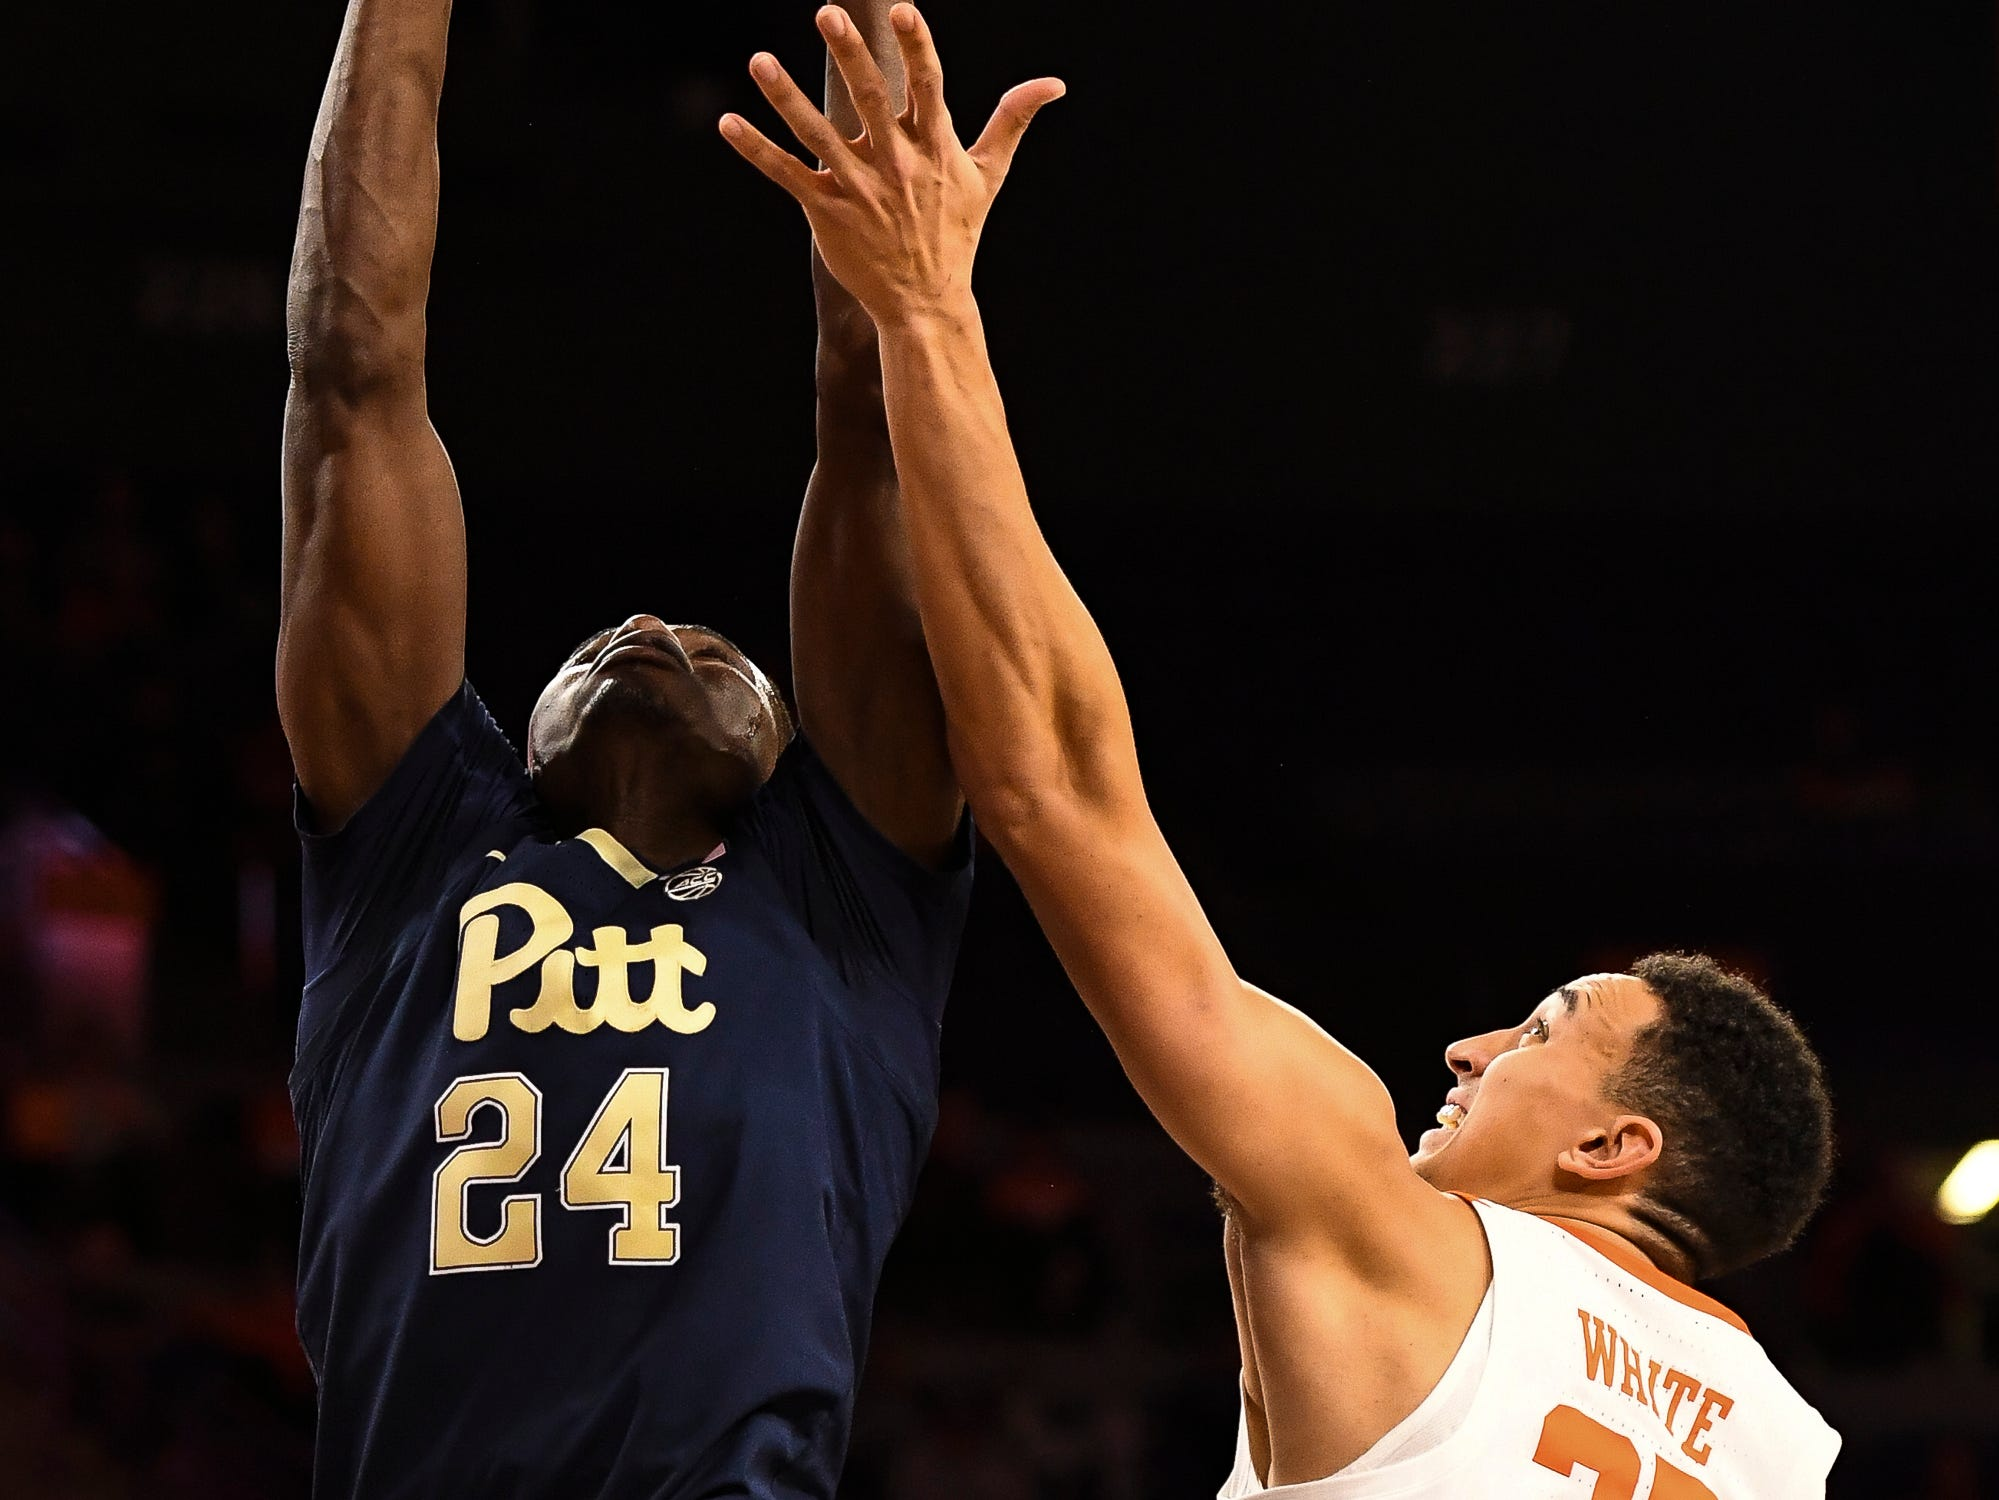 PittsburghÕs Samson George (24) attempts to grab the rebound away from Clemson forward Aamir Simms (25) at Littlejohn Stadium on Tuesday, Jan. 29, 2019.